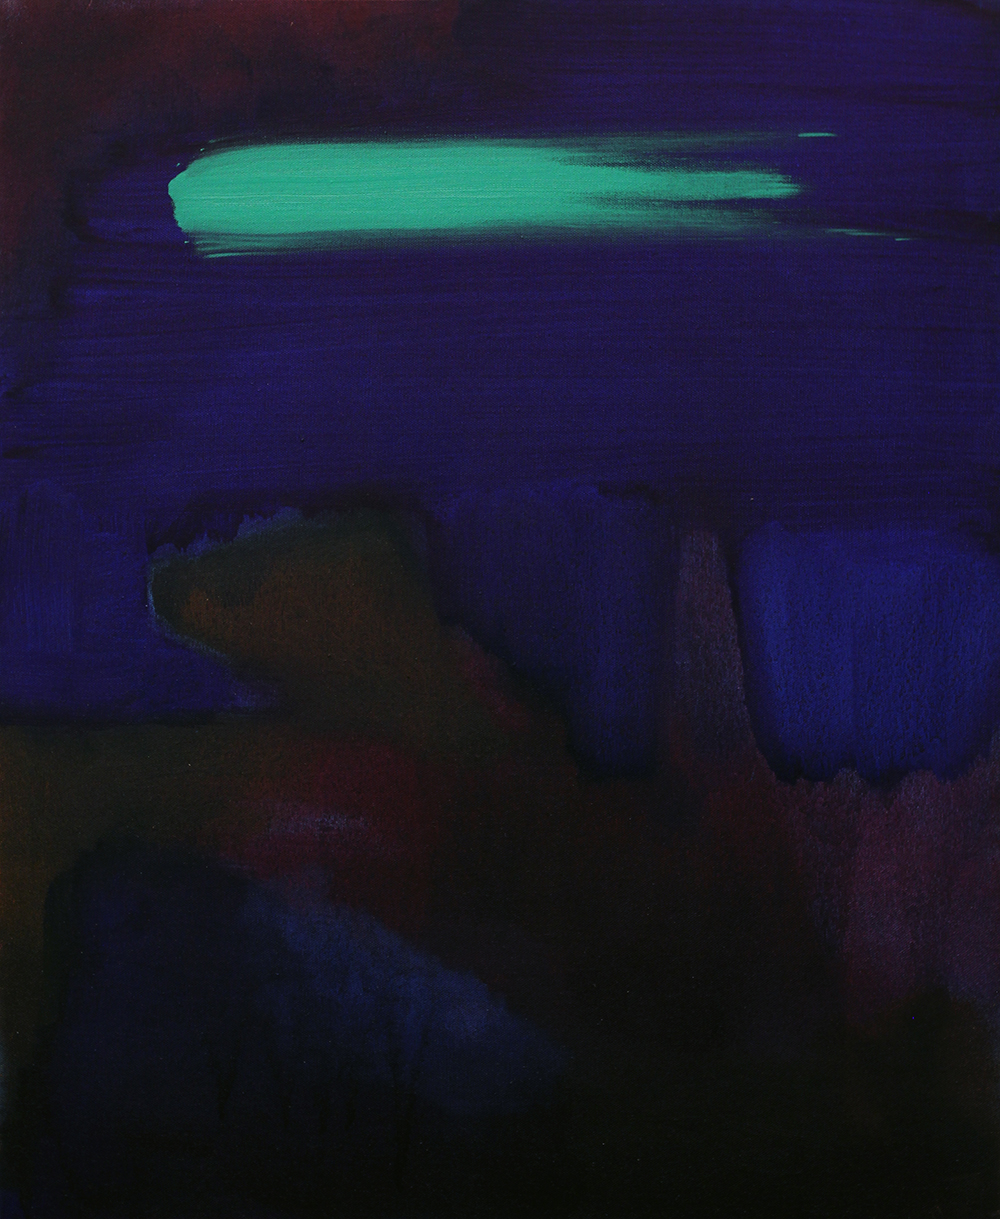 Green streak, 2014, oil on canvas, 21 x 25.5